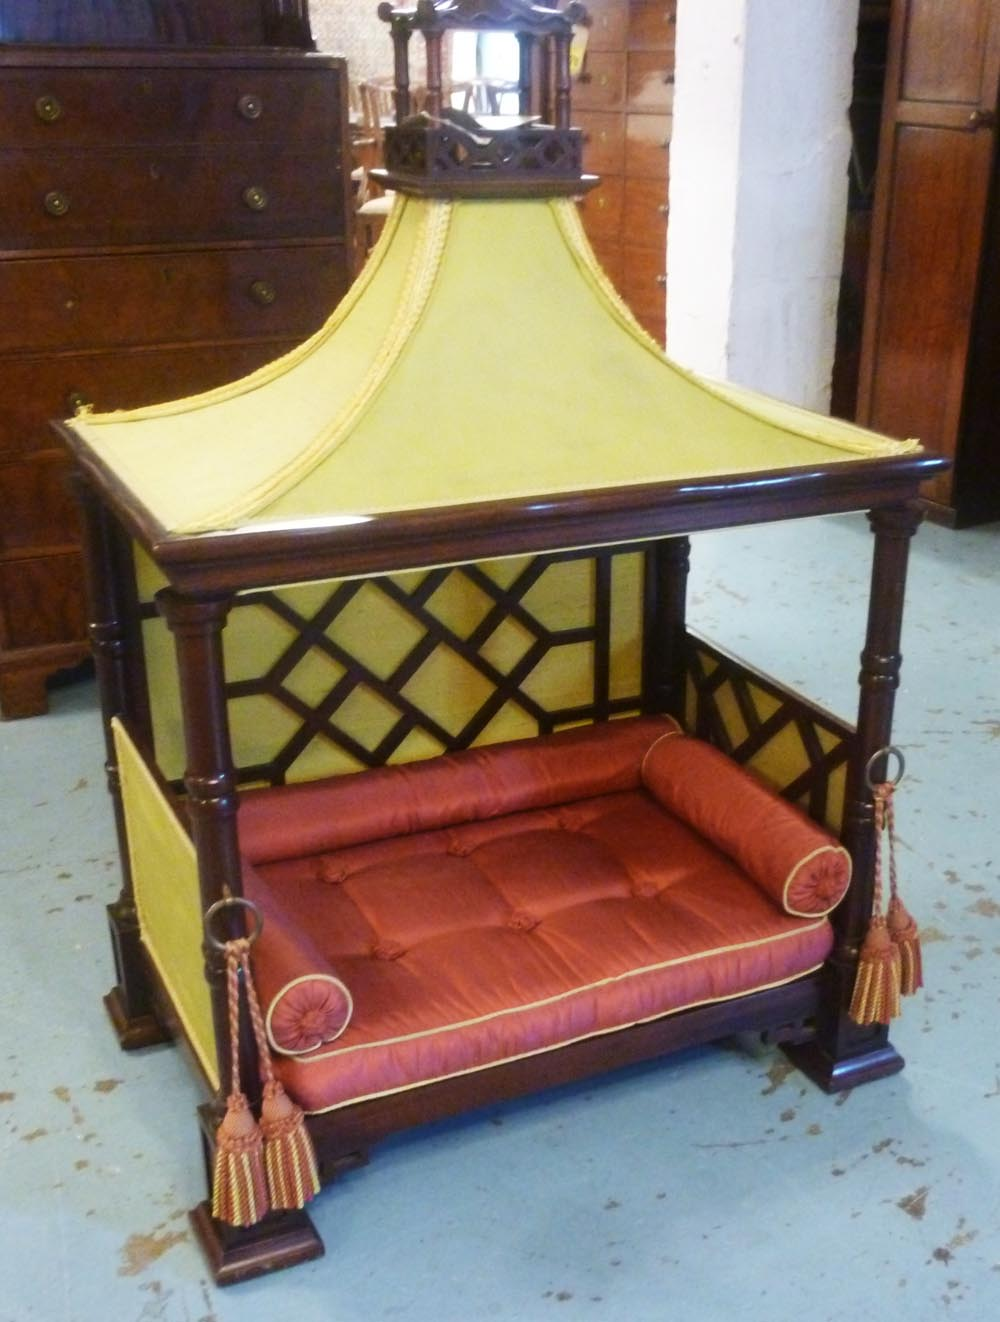 Picture of: Dog Bed Of Four Poster Pagoda Form With Yellow And Red Satin Bedding Hardwood Construction 77c